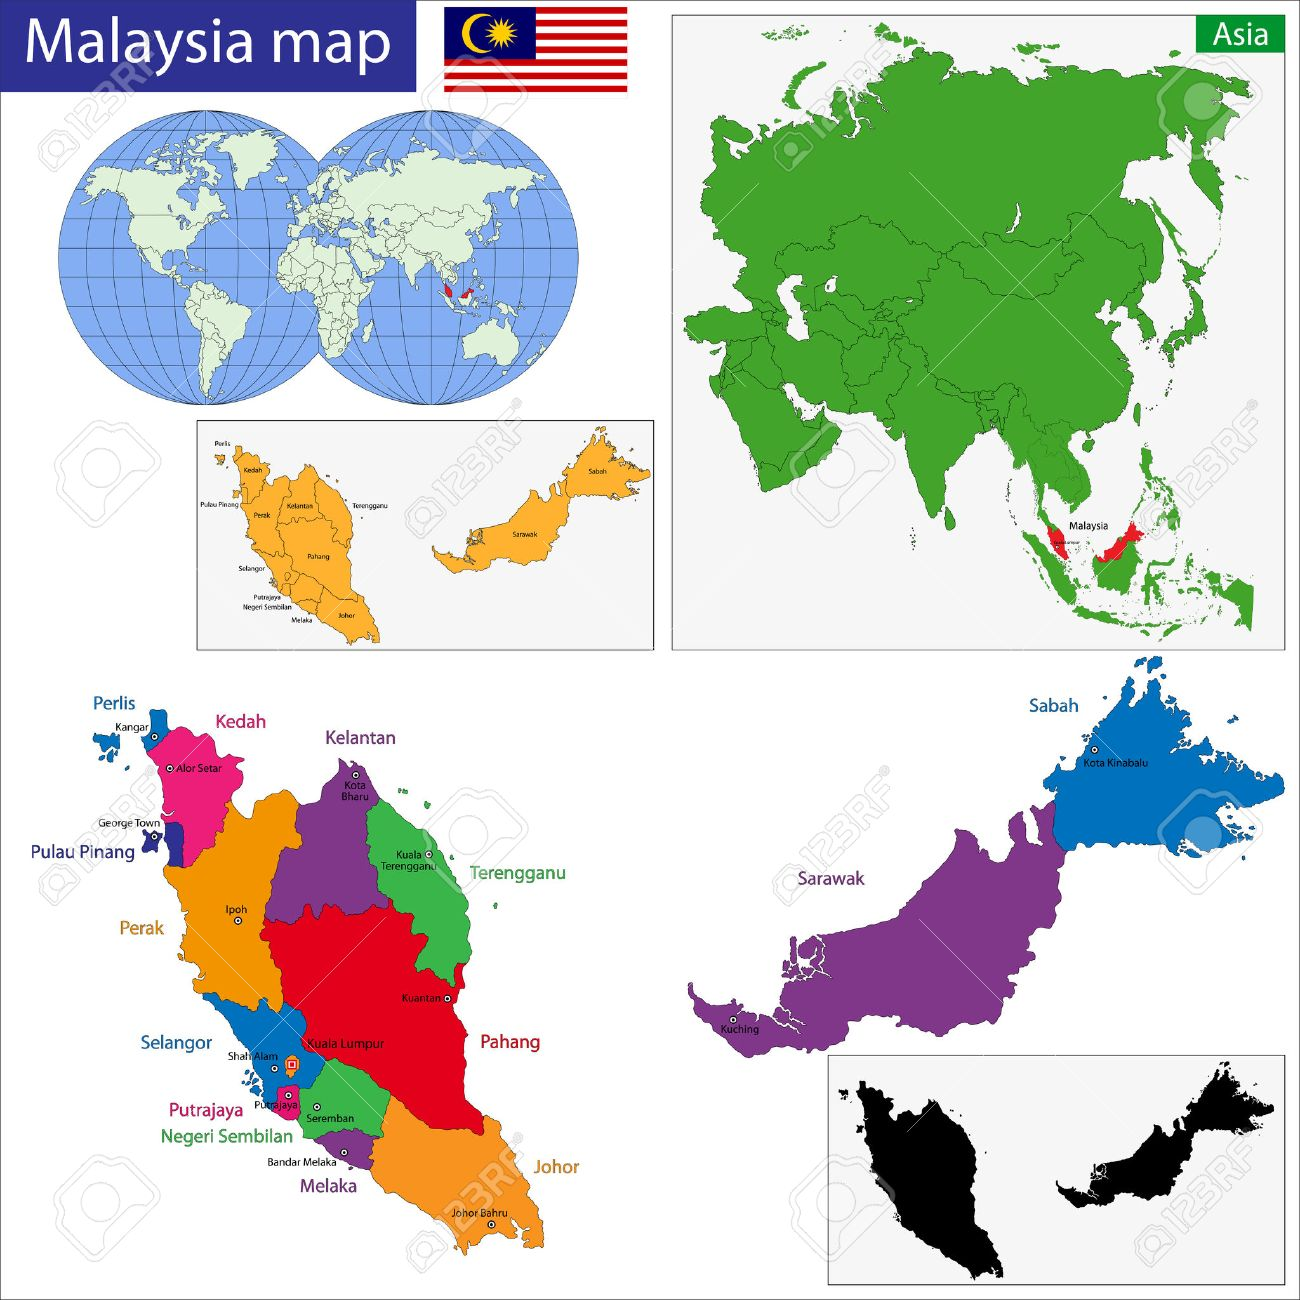 Picture of: Map Of Malaysia With The States Colored In Bright Colors Royalty Free Cliparts Vectors And Stock Illustration Image 24378410